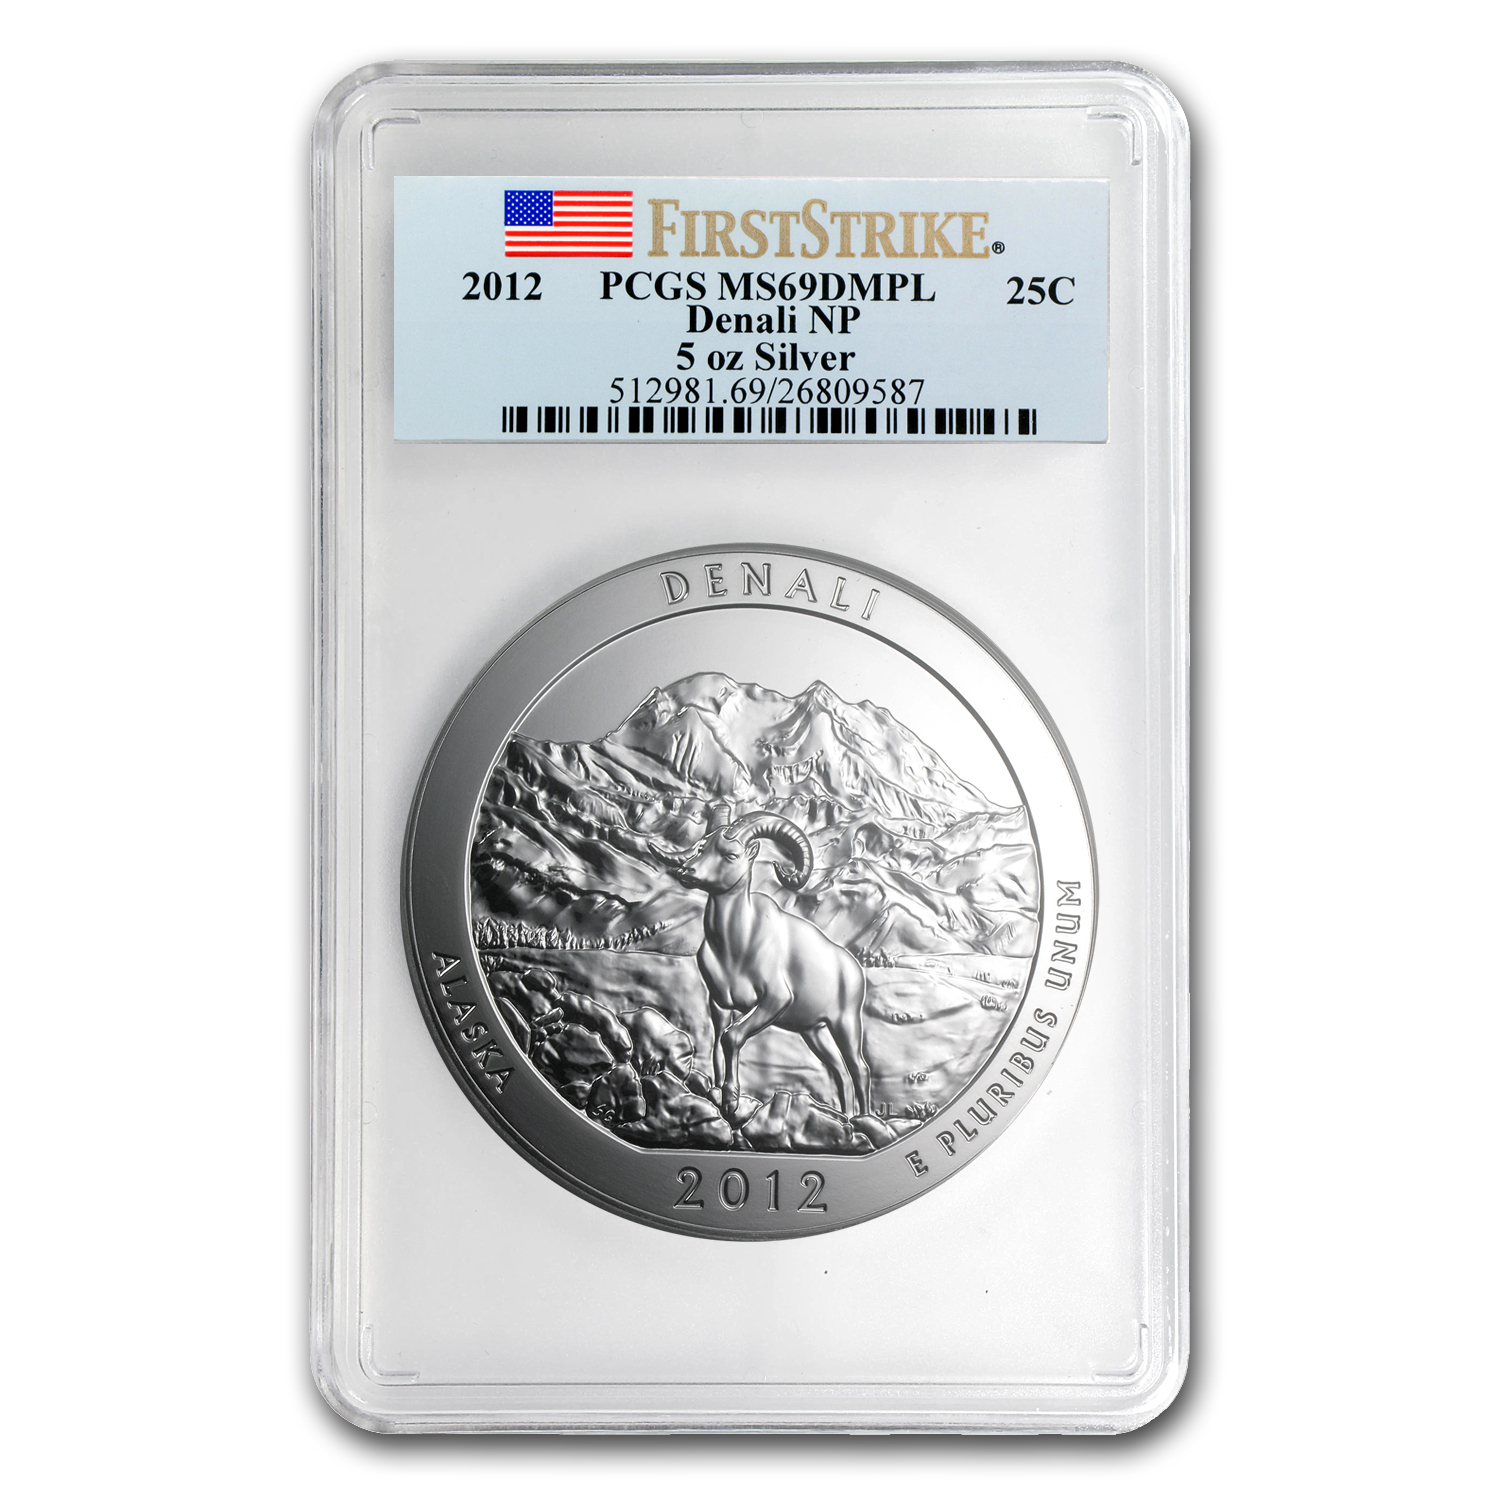 2012 5 oz Silver ATB - Denali MS-69 DMPL First Strike PCGS